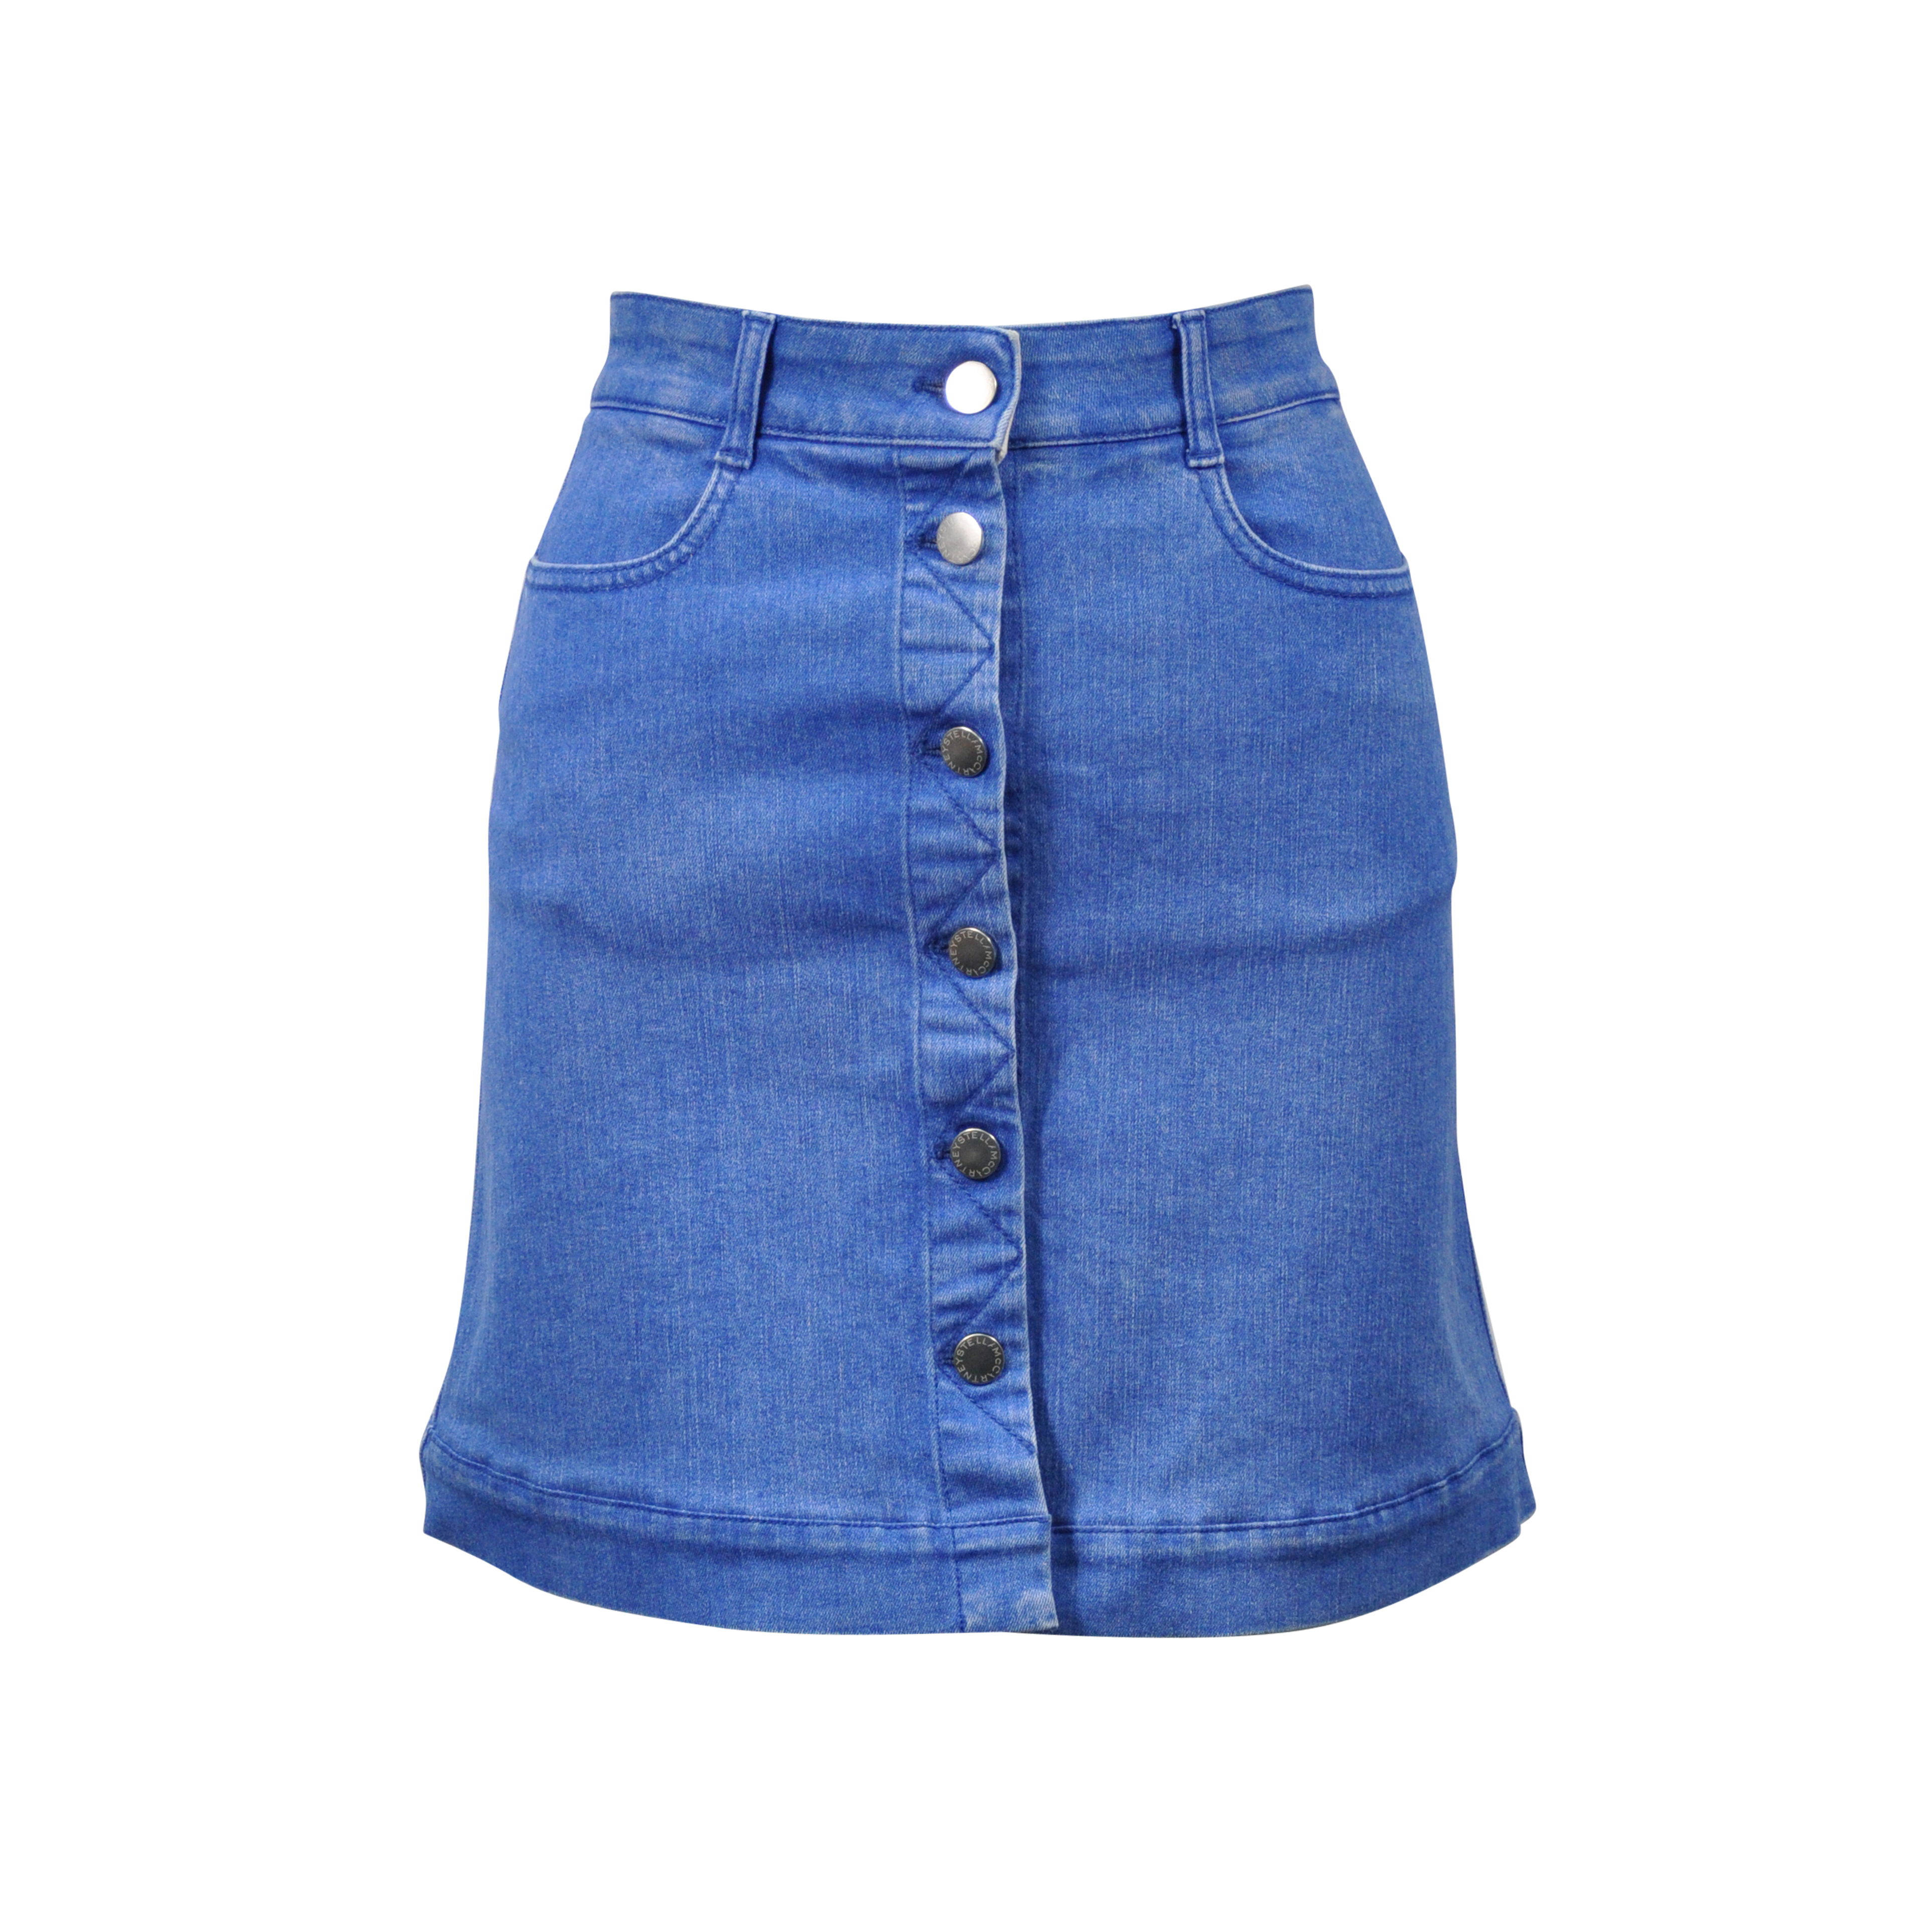 ecbdd3f7b7 Authentic Second Hand Stella McCartney Button Down Denim Skirt  (PSS-313-00013) - THE FIFTH COLLECTION